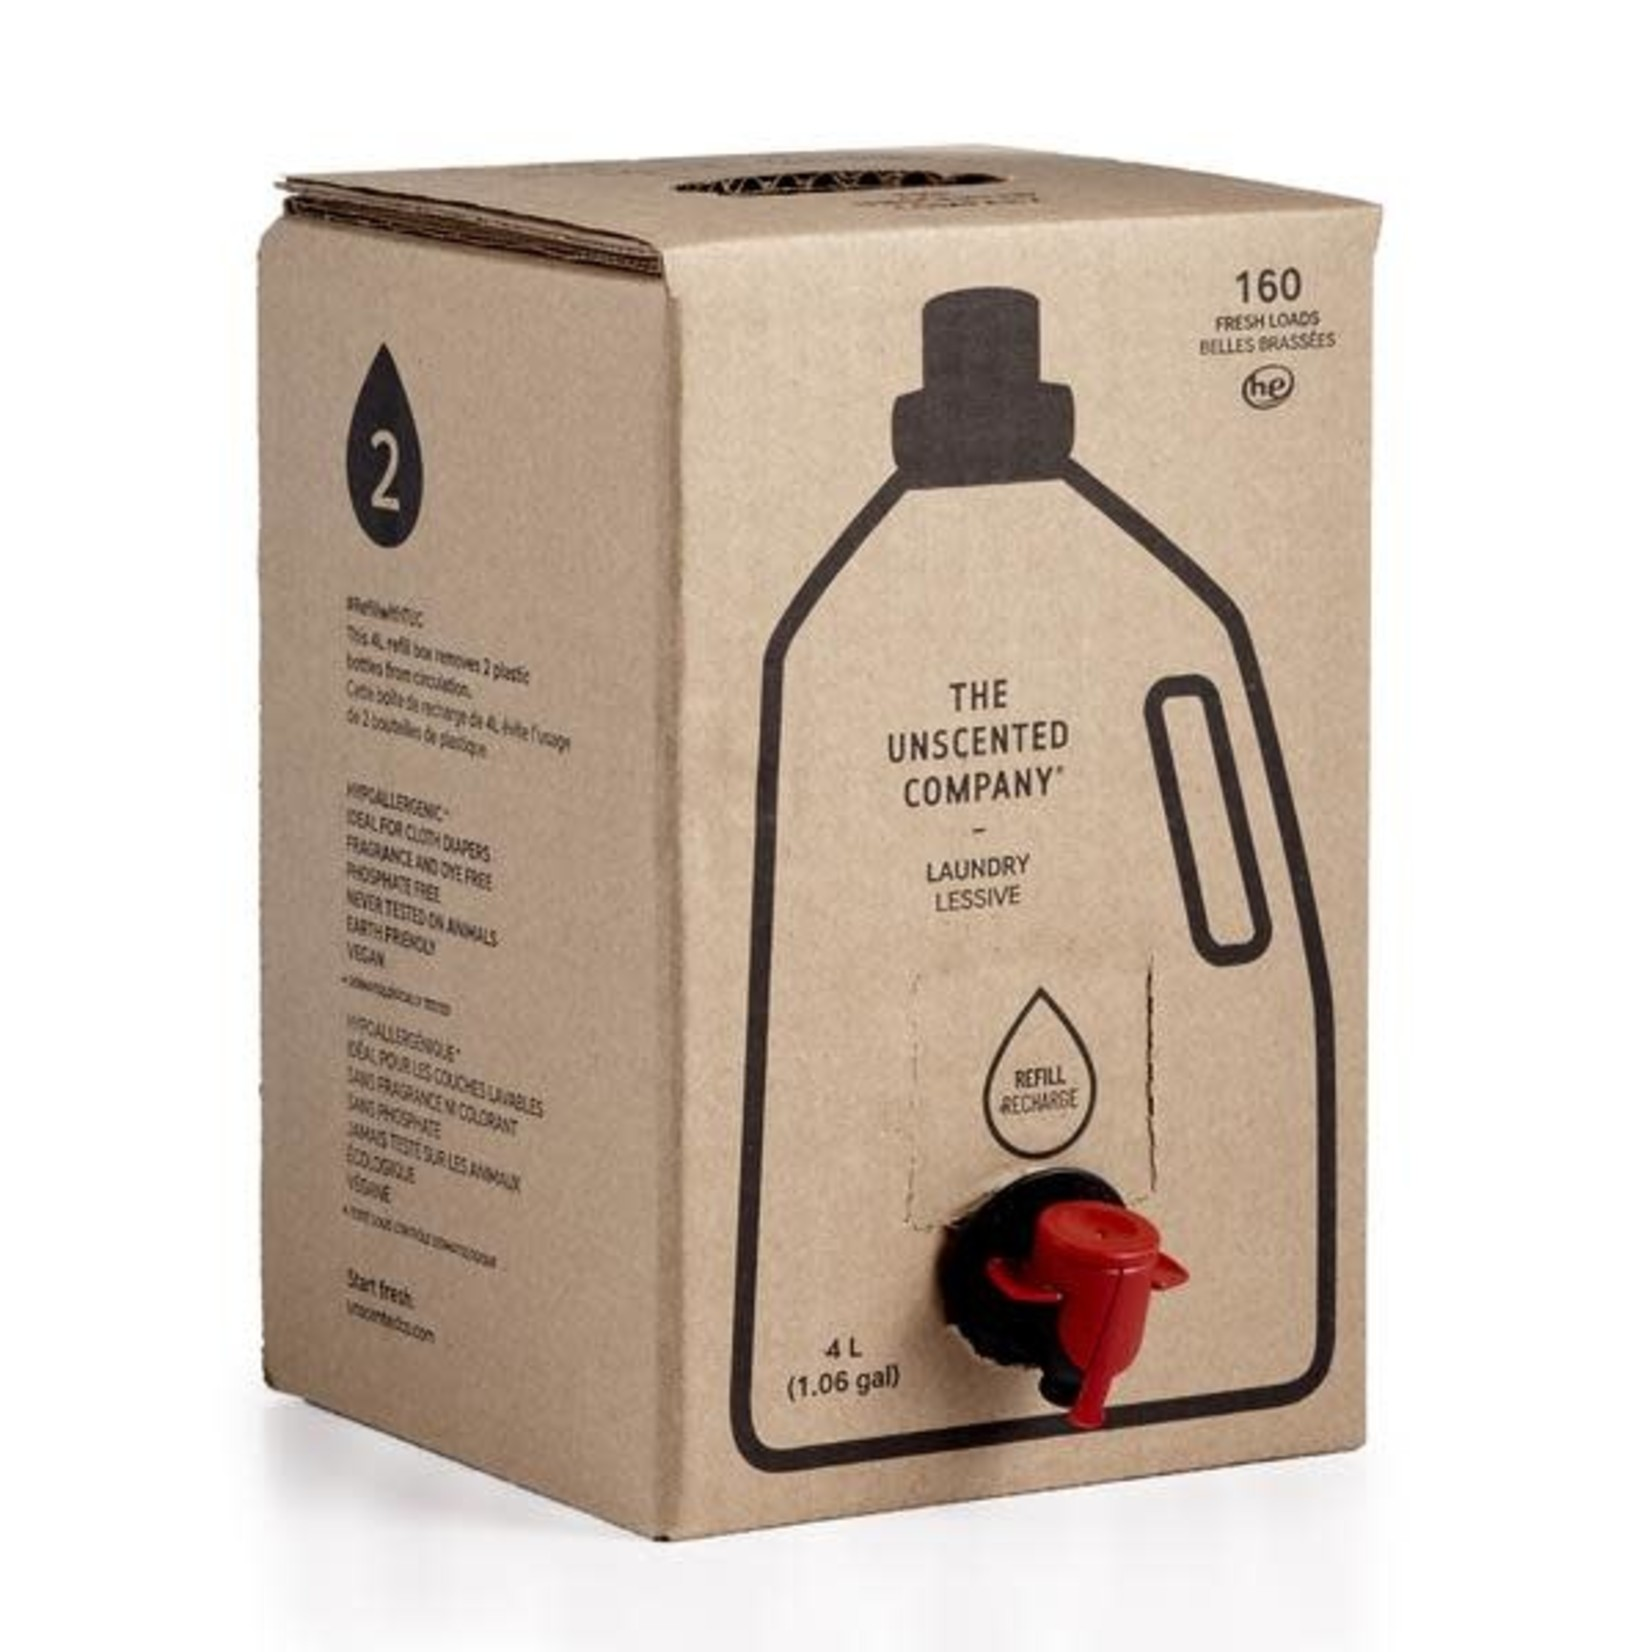 THE UNSCENTED COMPANY LAUNDRY - 4L REFILL BOX